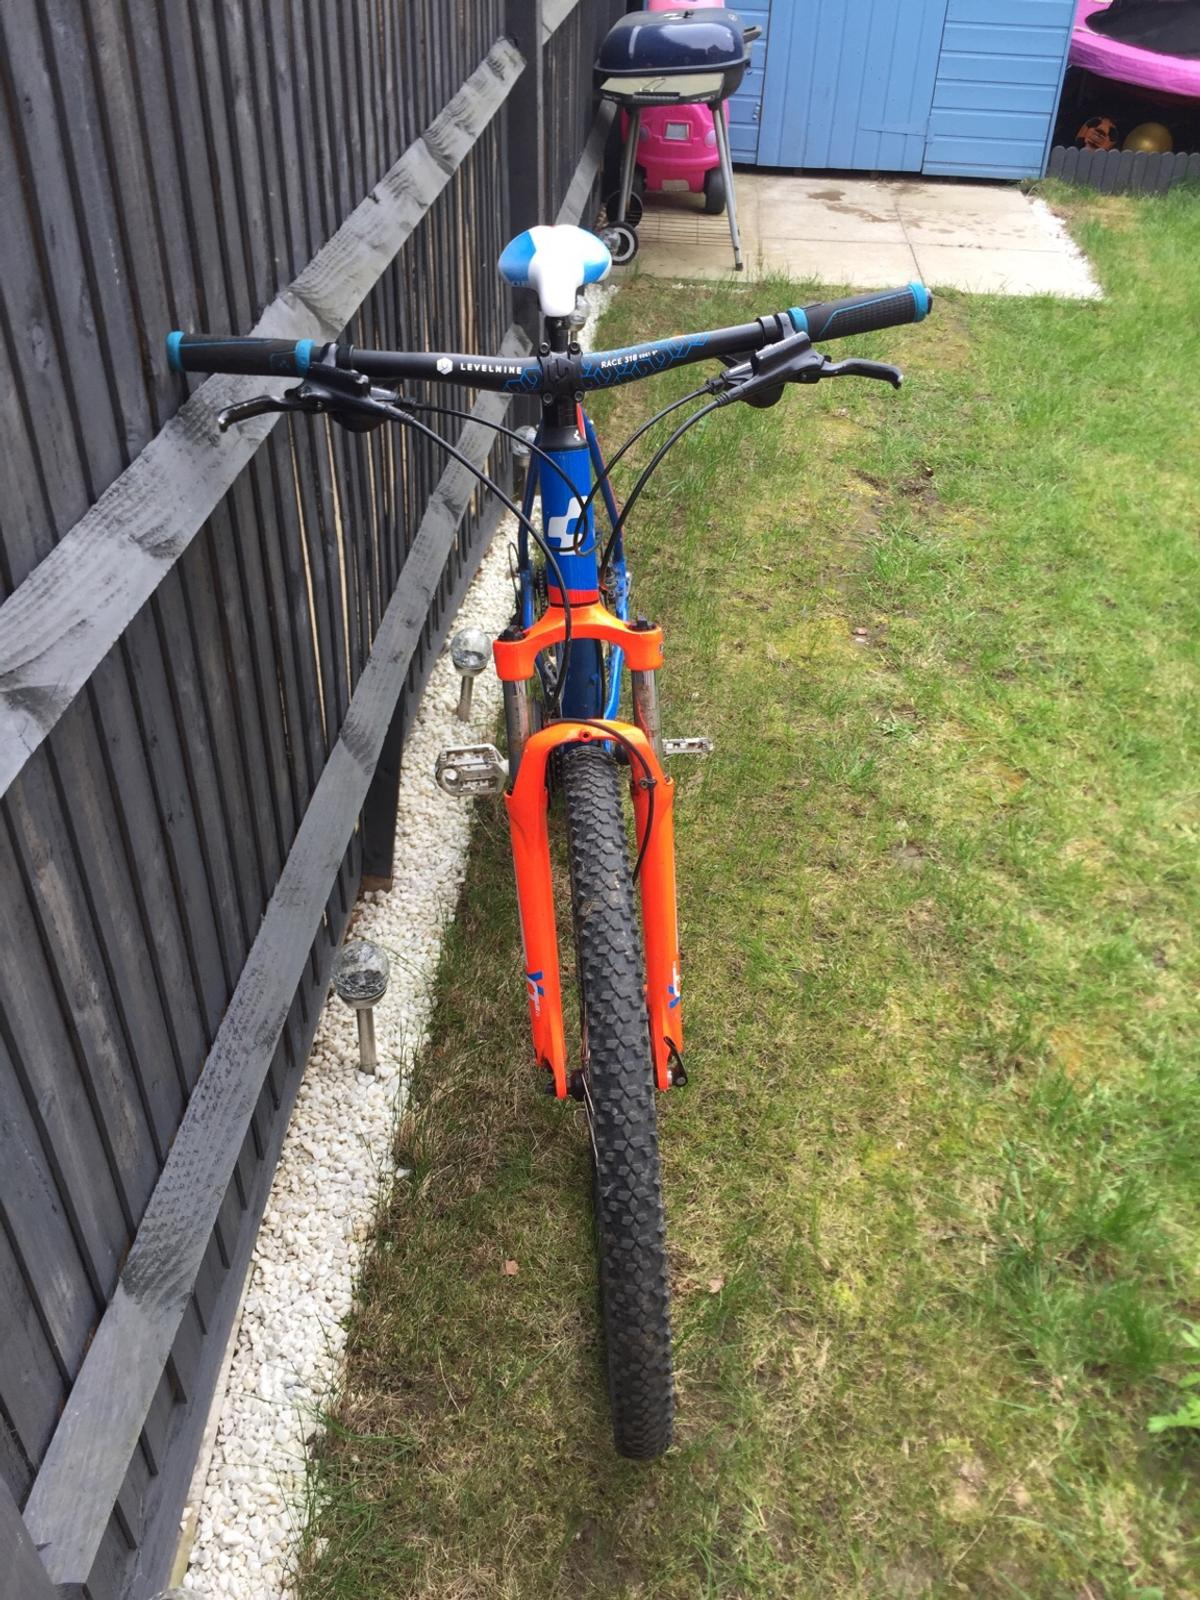 cfbbe7f5d Cube mountain bike in RG41 Wokingham for £200.00 for sale - Shpock